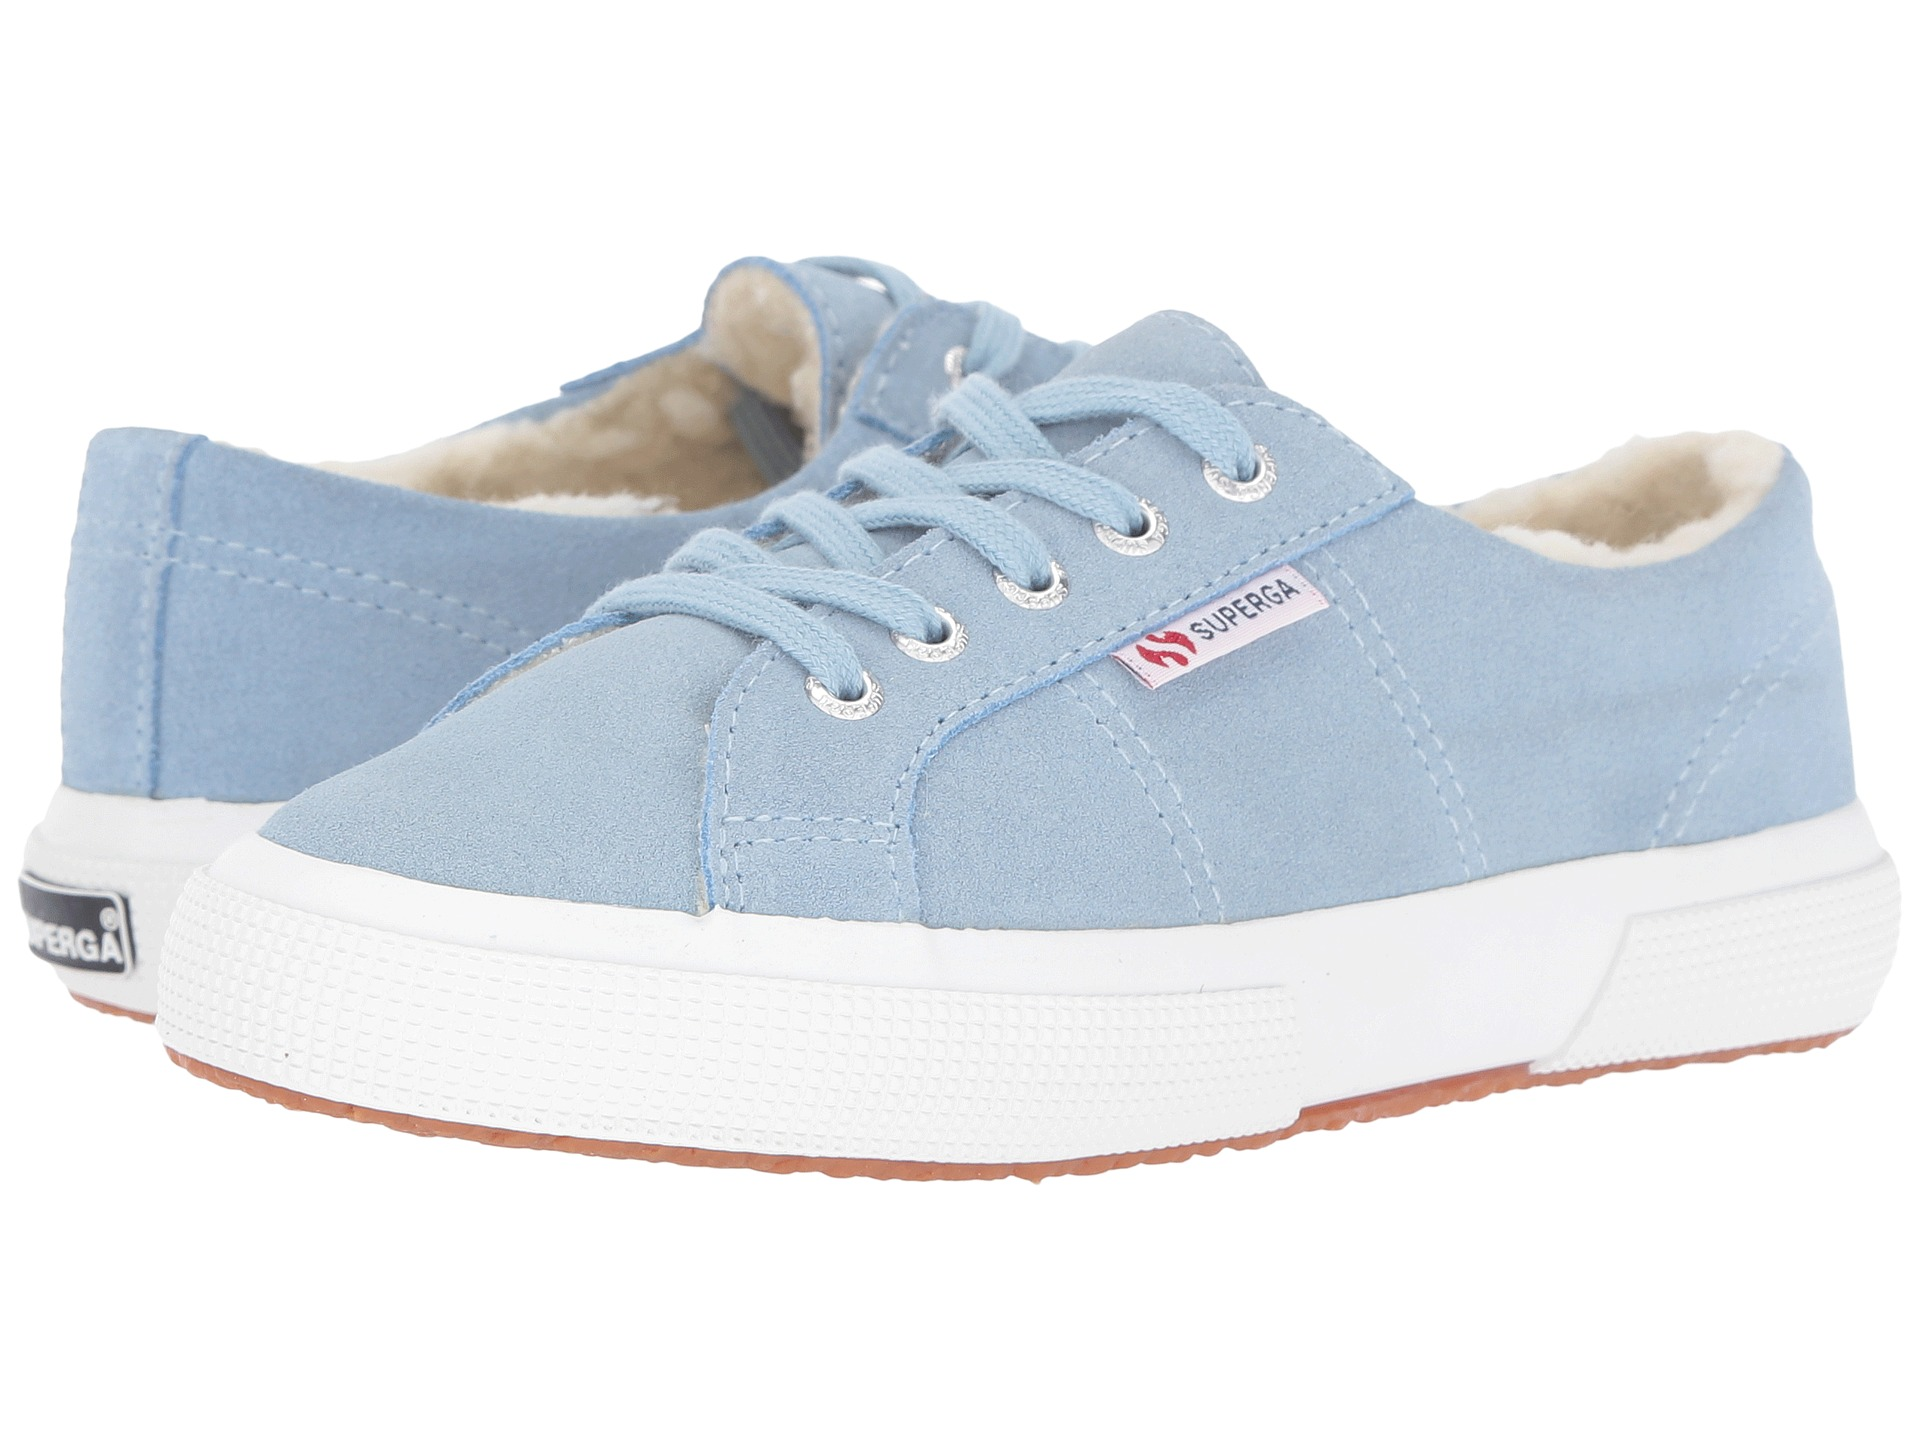 These sleek, Superga sneakers get a sporty upgrade with a mesh upper. Superga Women's Tartanvelw Sneaker. by Superga. $ $ 99 00 Prime. FREE Shipping on eligible orders. Some sizes/colors are Prime eligible. out of 5 stars 9. Product Features superga classic sneaker. Previous Page 1 2 3 20 Next Page.